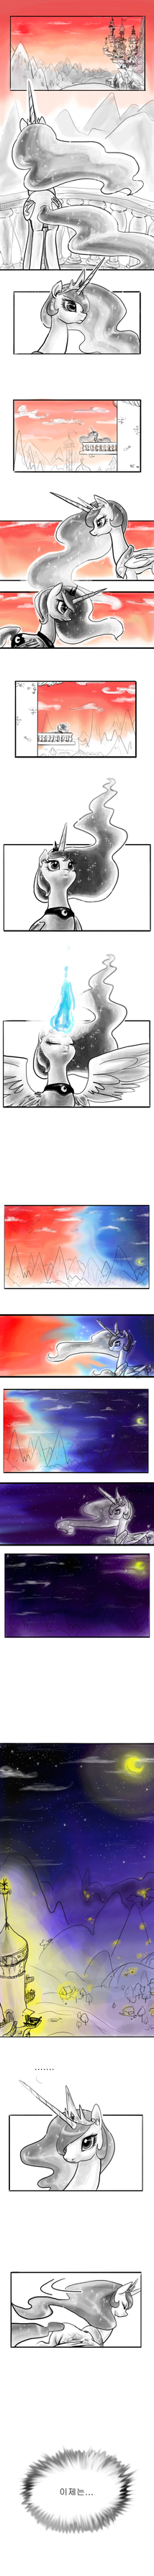 [mlp fan cartoon] The Nightmare - e1 of 1 by vldzl0